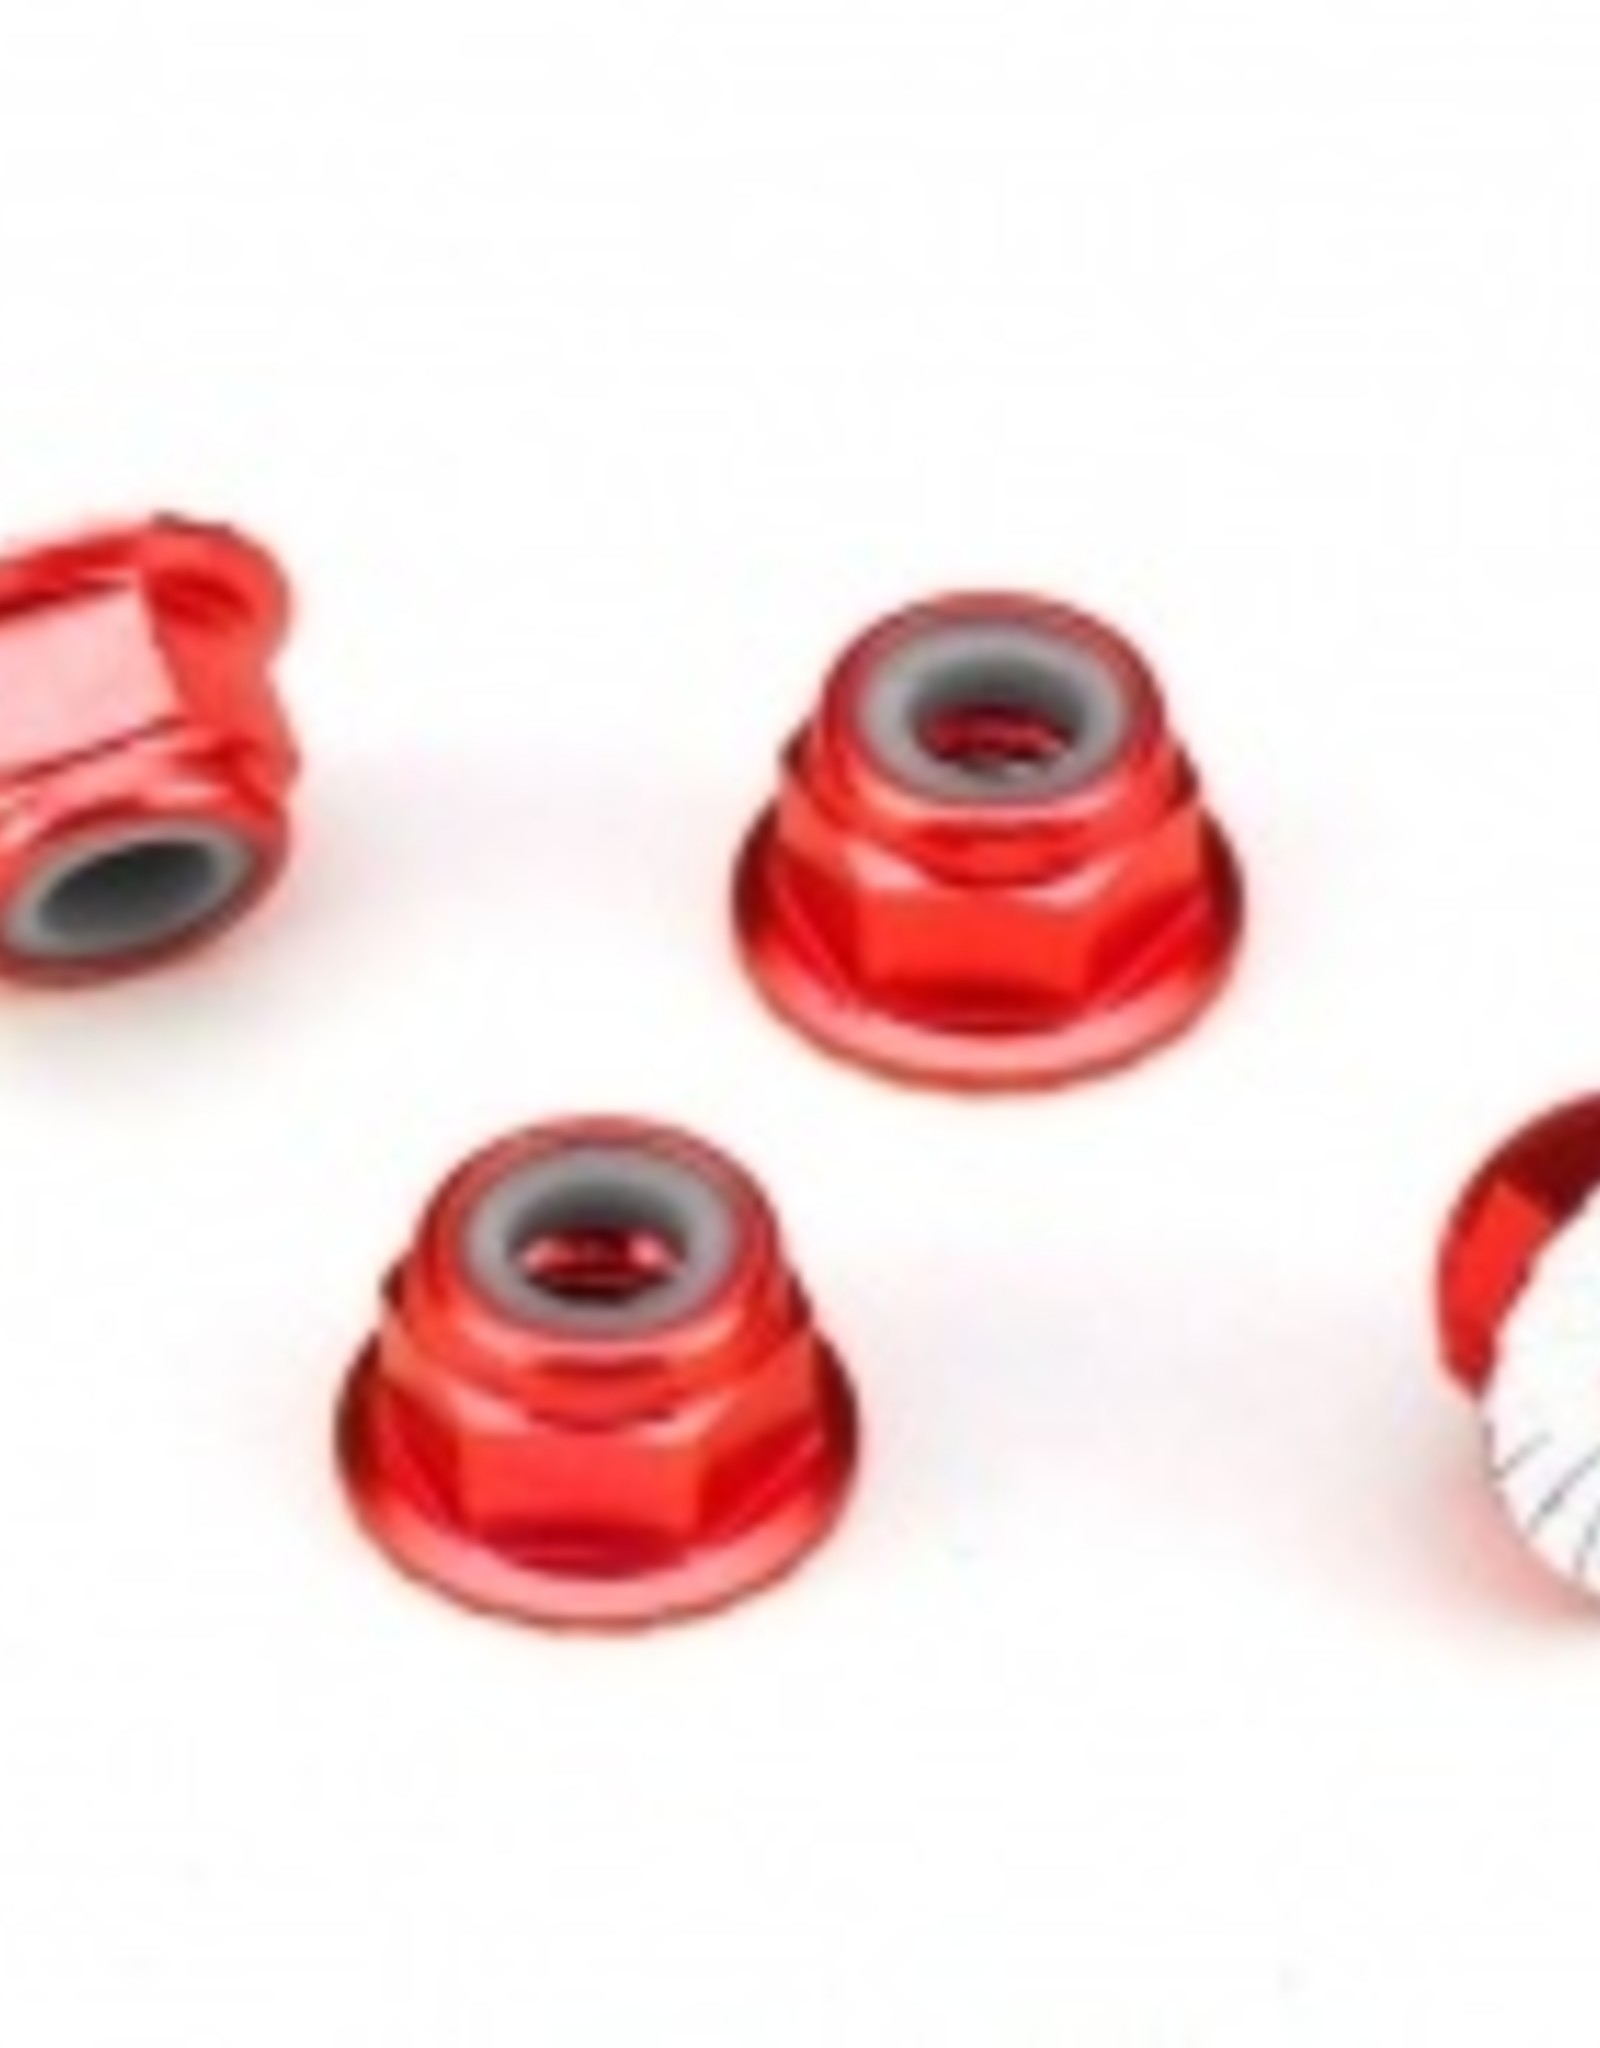 Traxxas Traxxas  Wheel Nuts, aluminum, flanged, serrated (4mm) (red-anodized) (4)